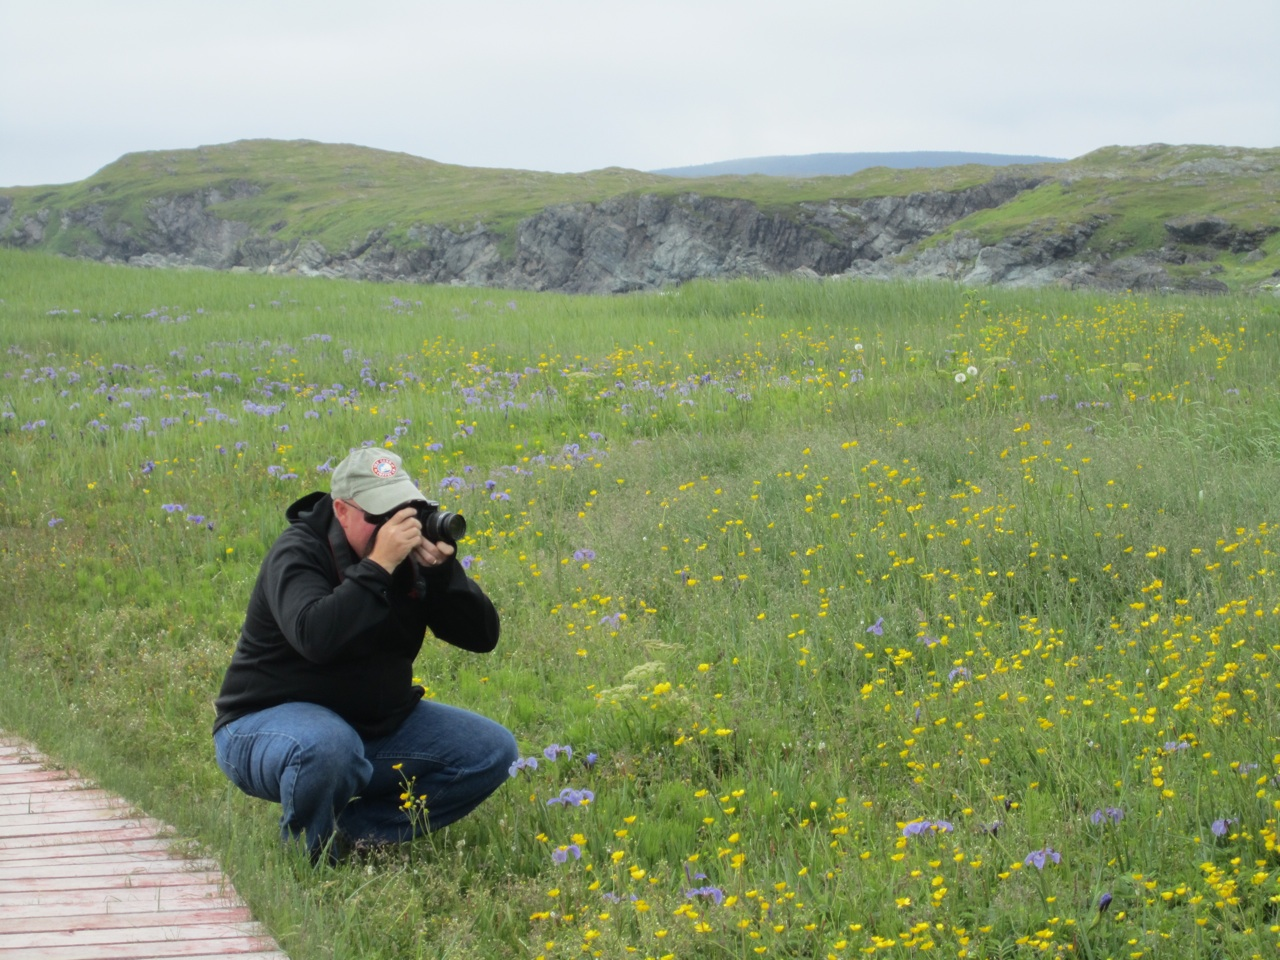 David Photographing The Wildflowers